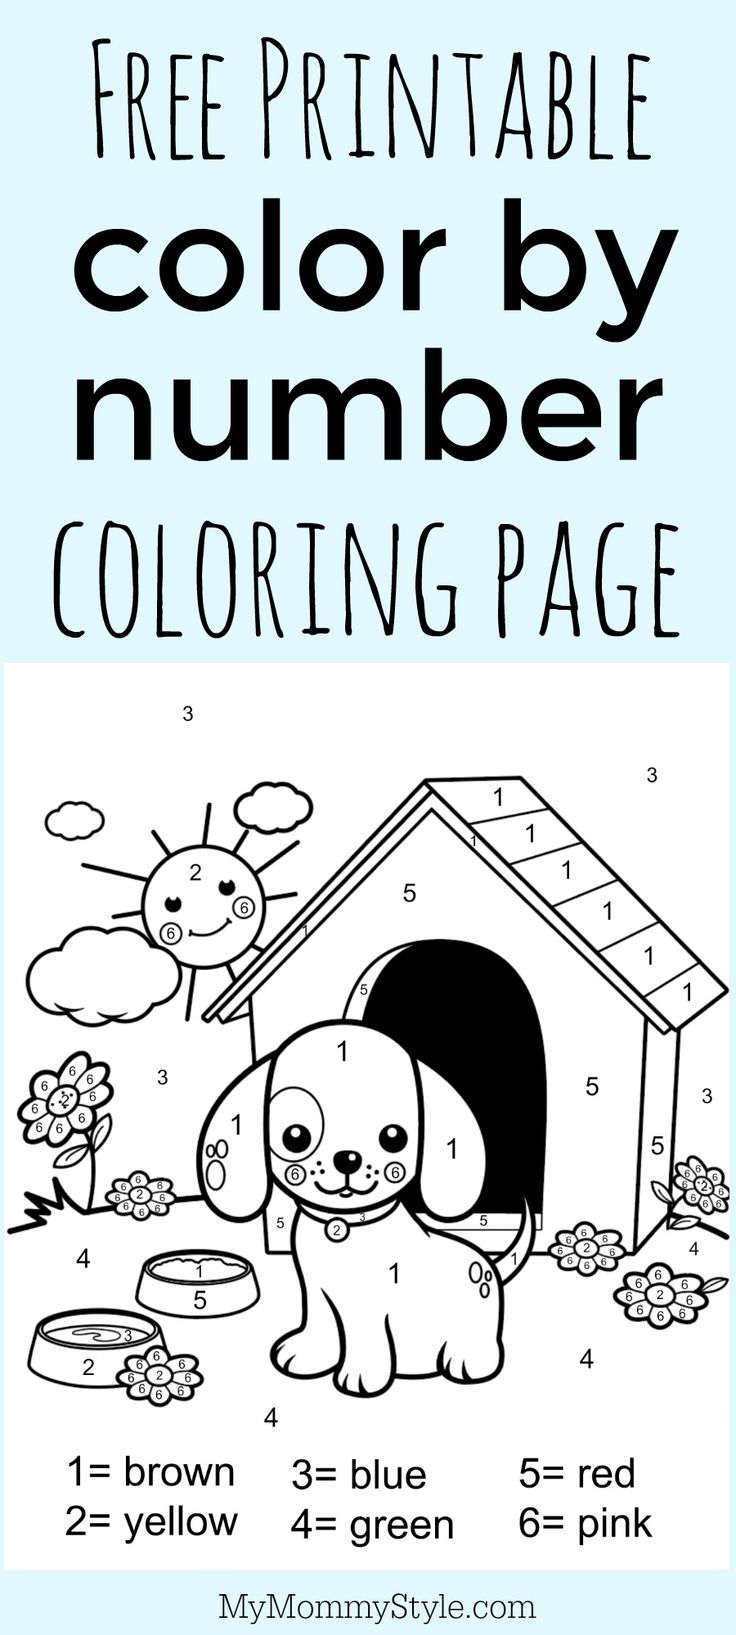 Happy summer holidays coloring pages - Color By Number Coloring Page Free Printable